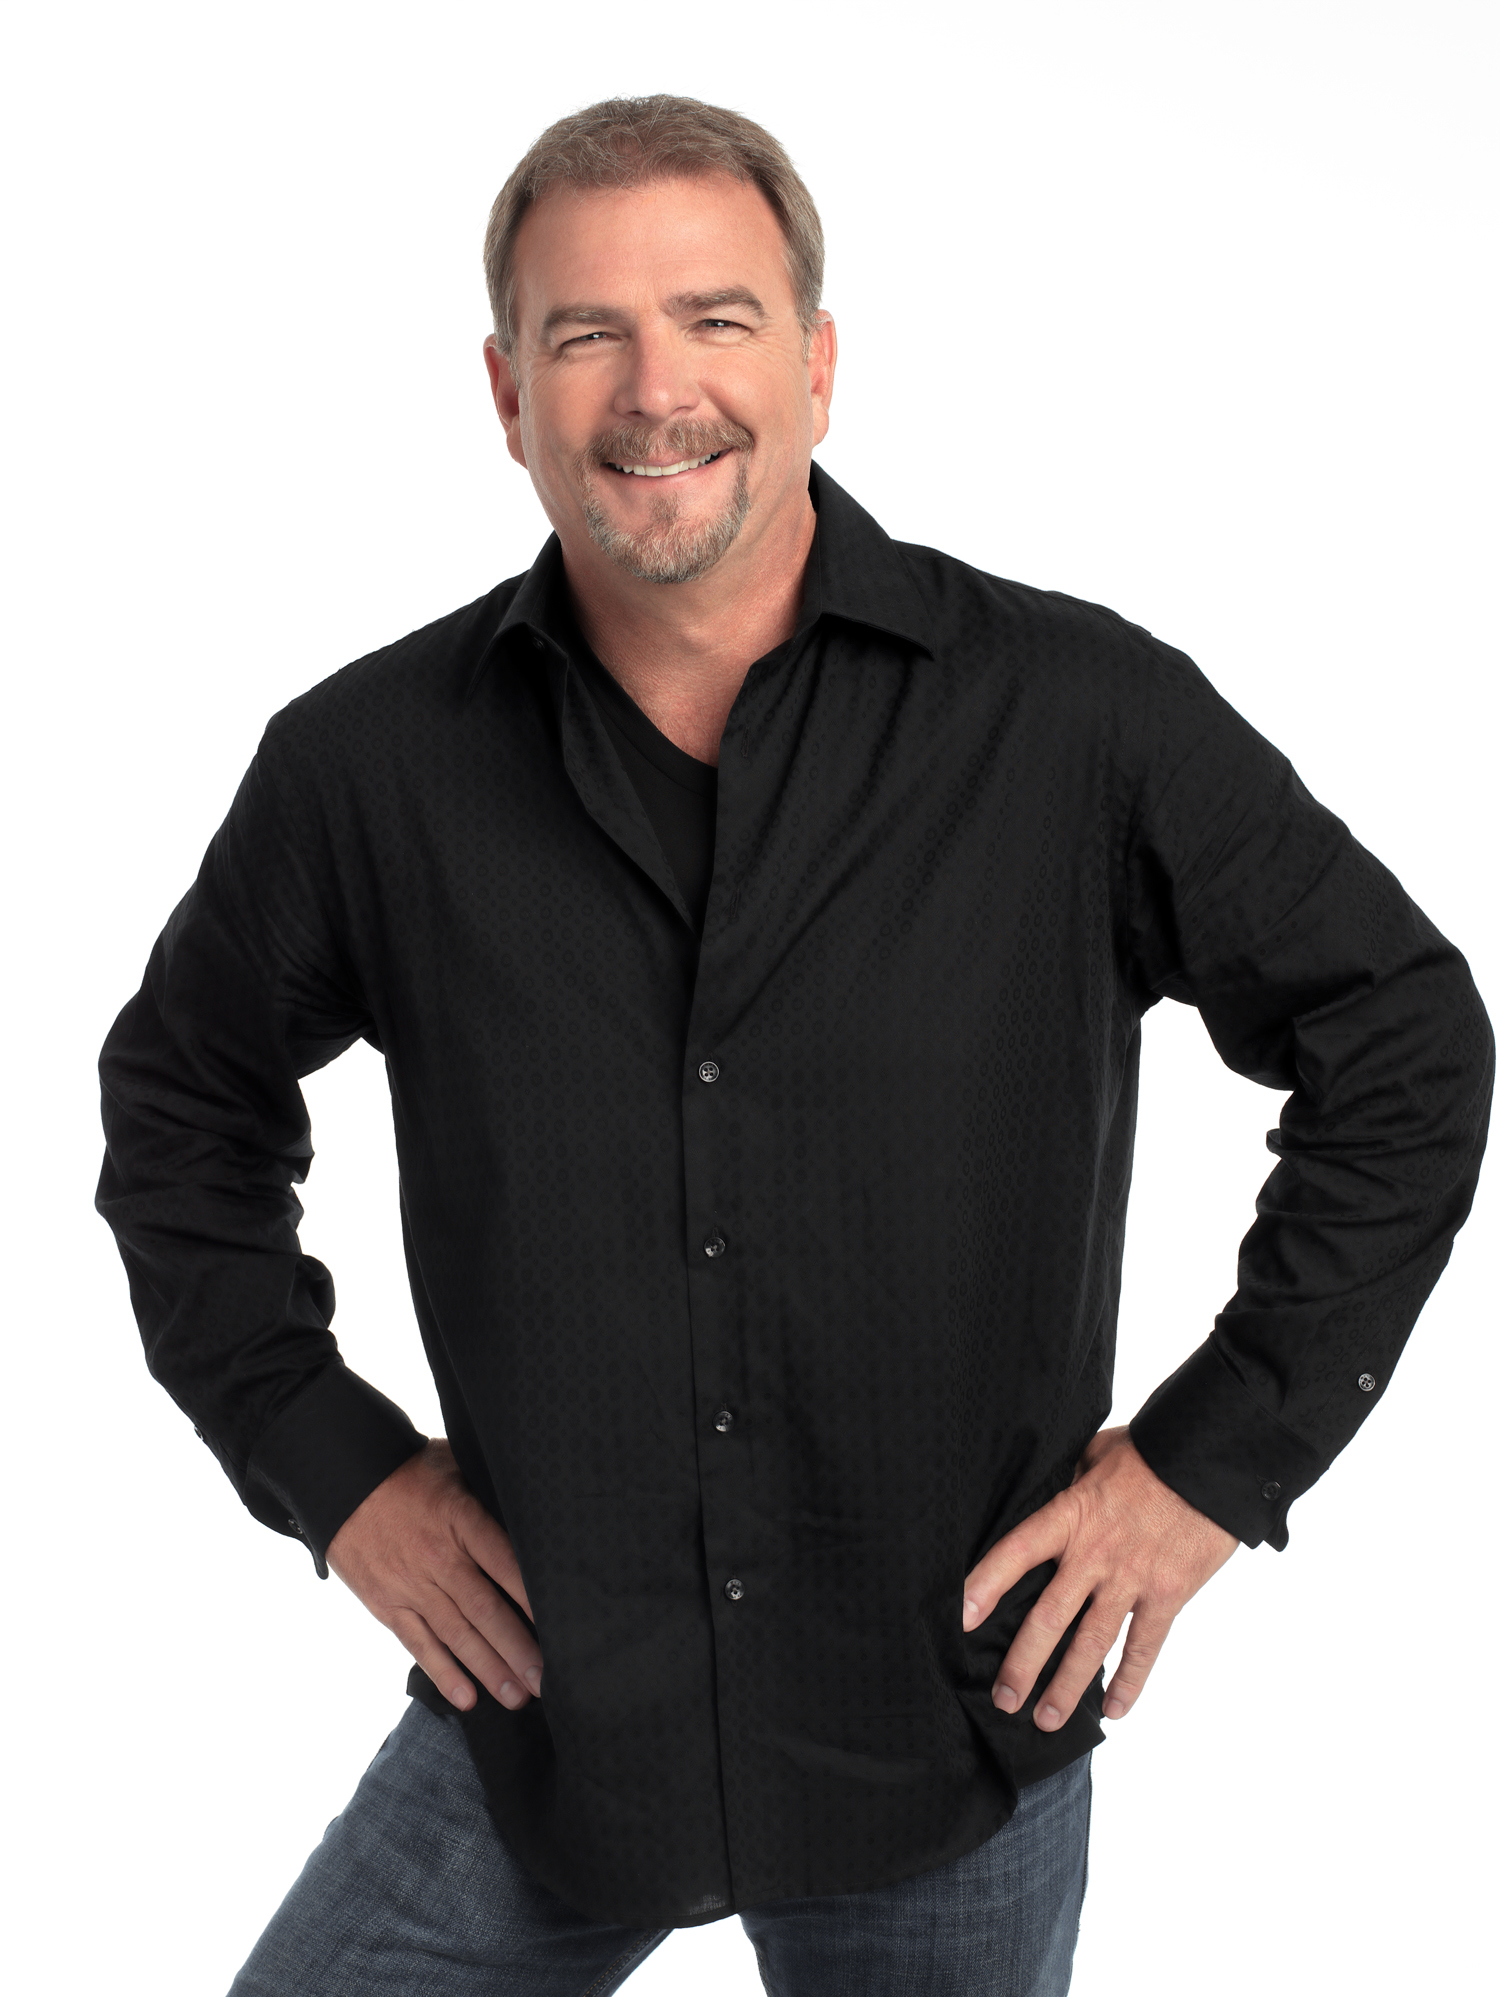 Blue Collar Comedy Tour Legend Bill Engvall to Perform First Show in Casino's Expo Center